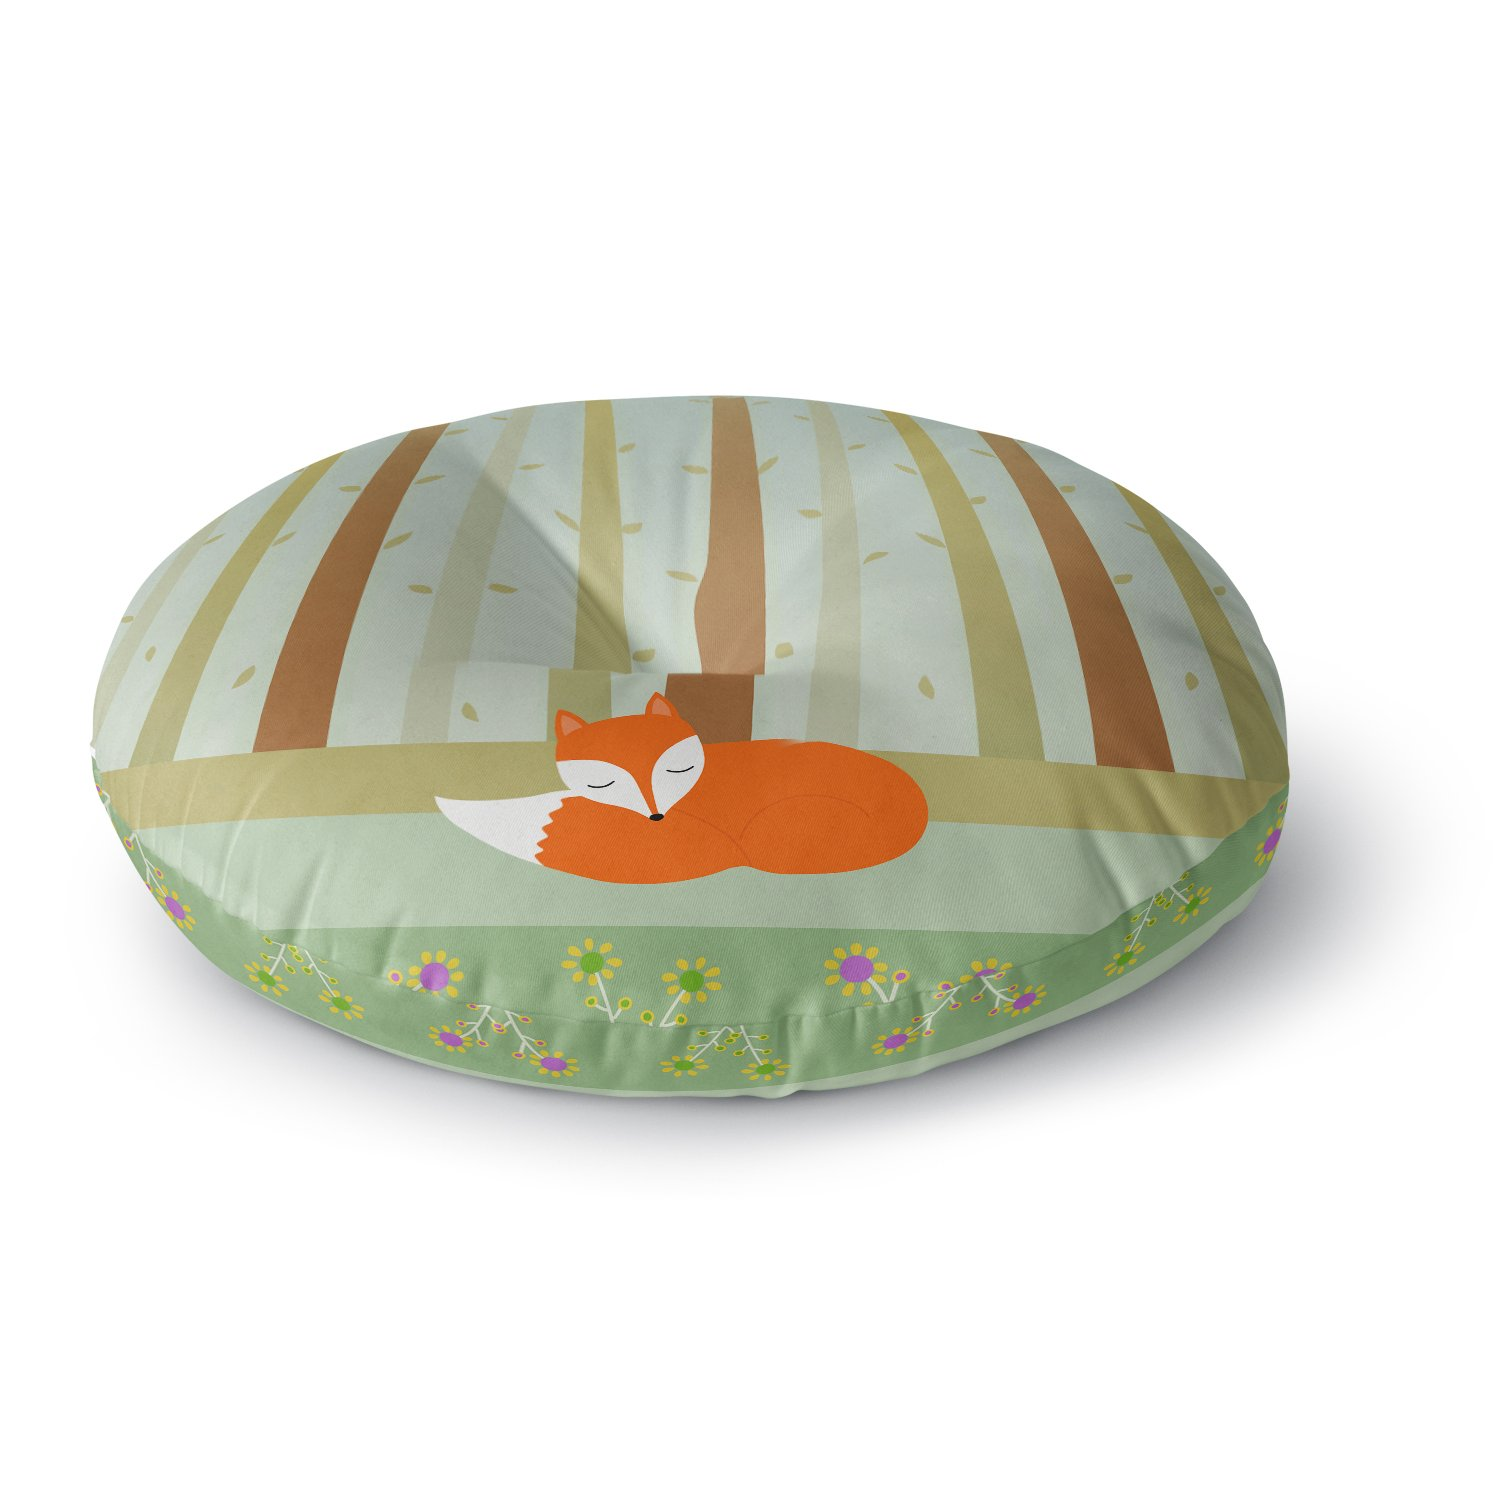 Kess InHouse Cristina Bianco Design Sleeping Fox Green Illustration Round Floor Pillow 26' CB2006ARF02